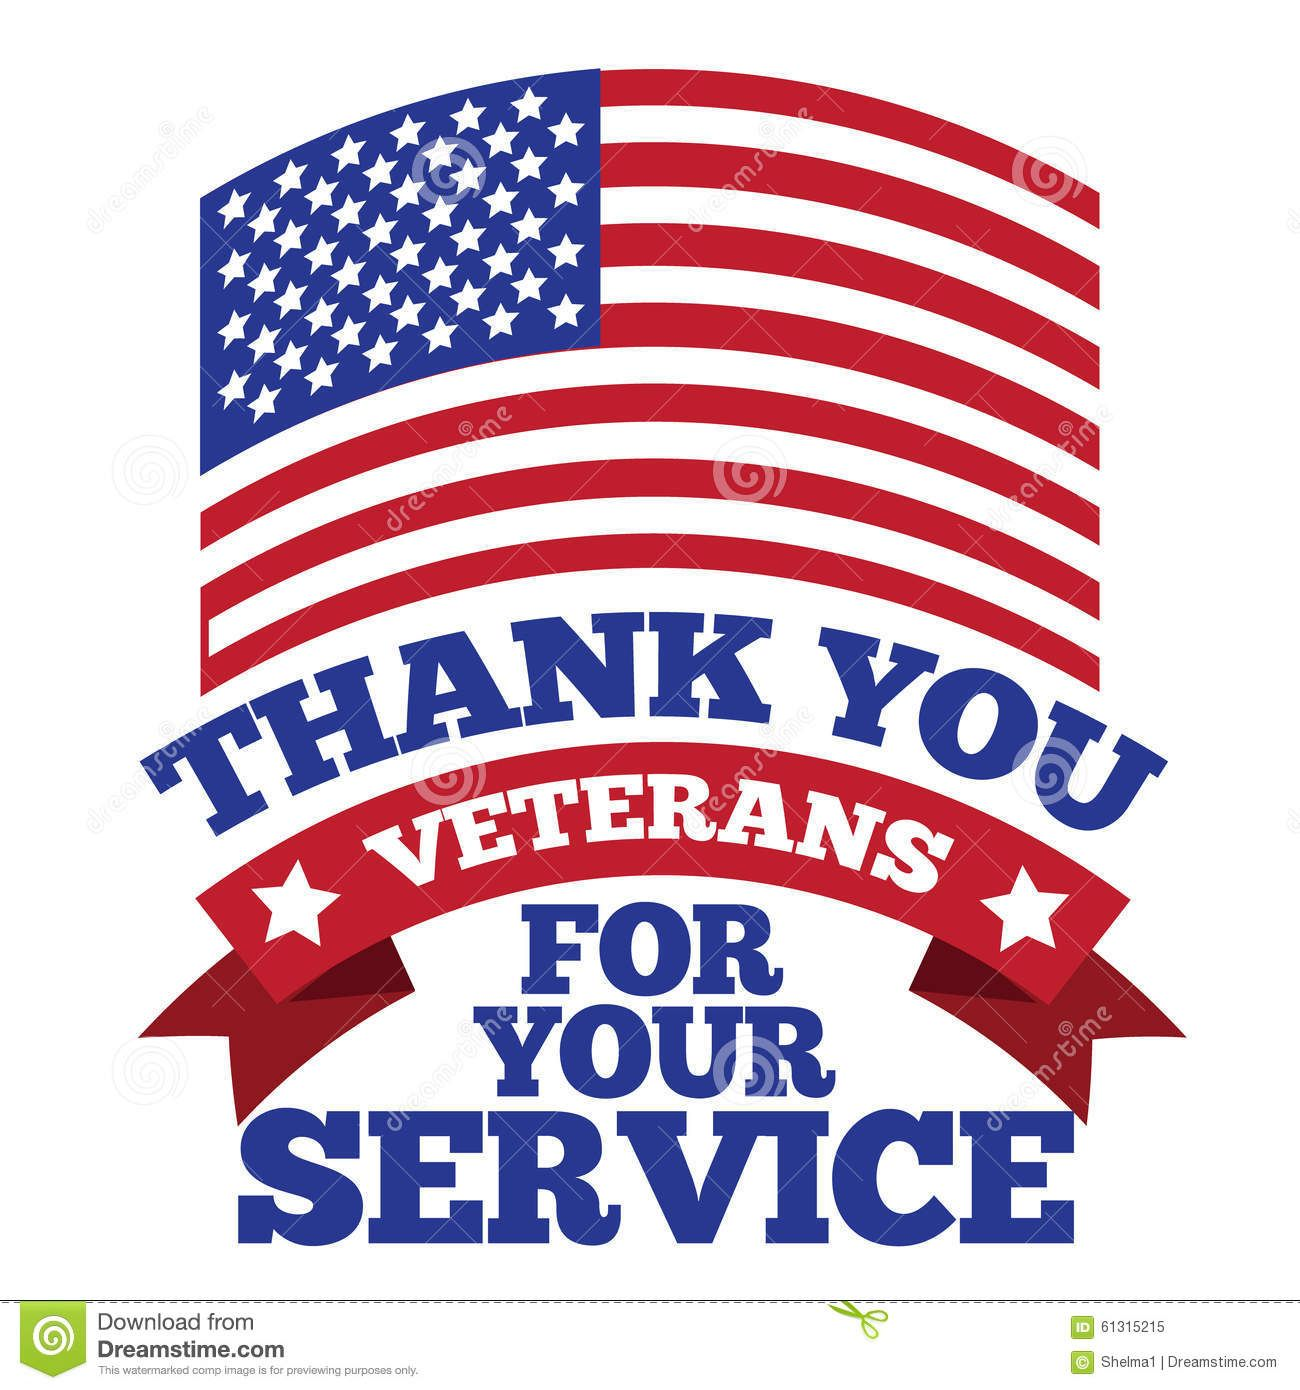 veterans-day-thank-you-design-eps-vector-royalty-free-stock